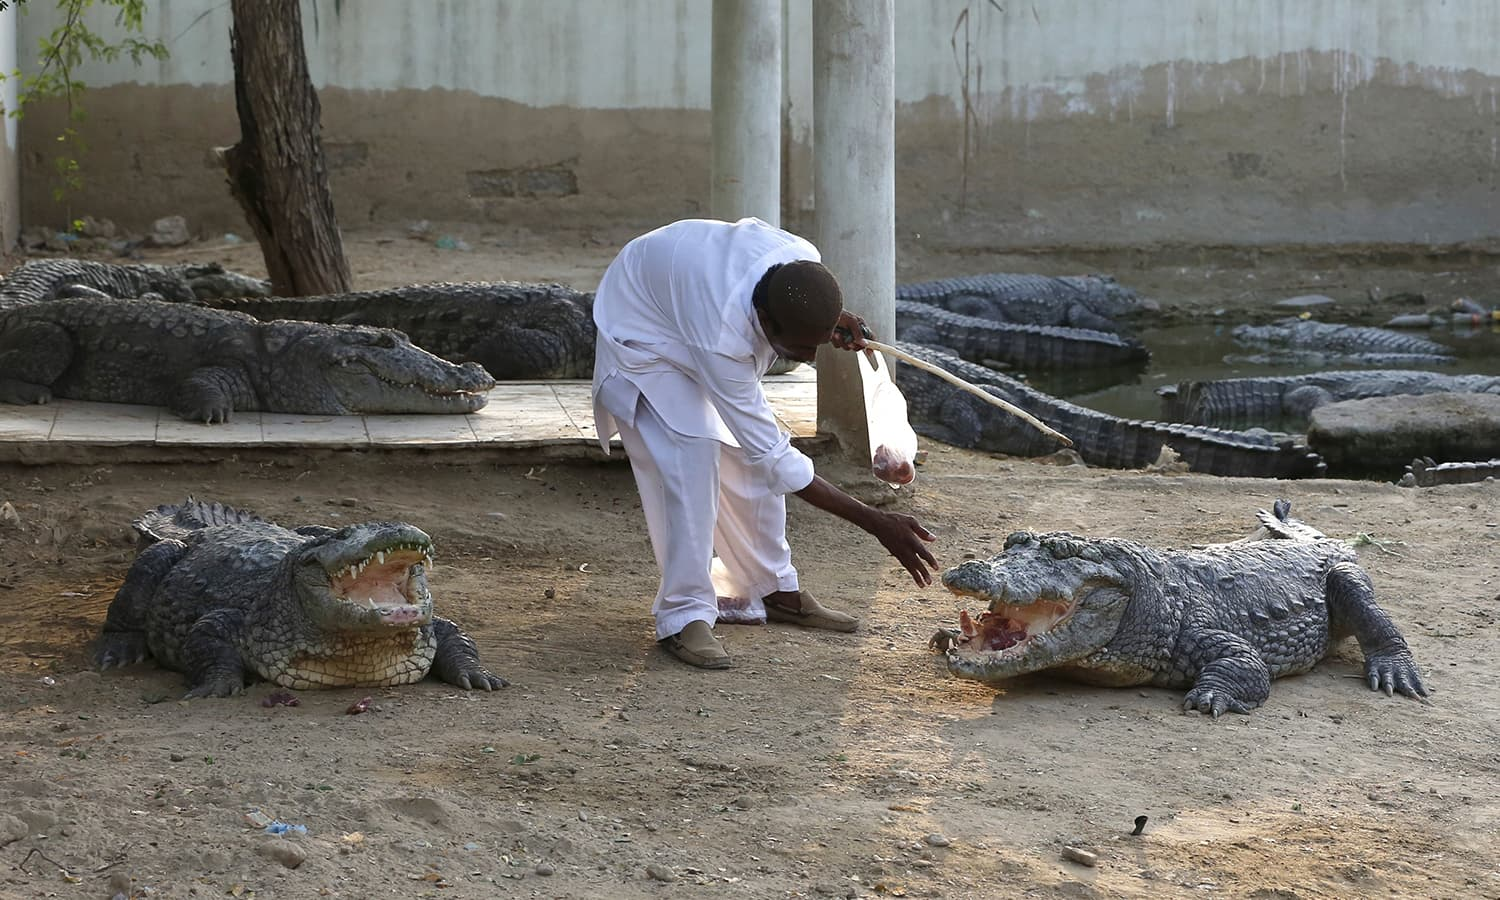 Caretaker feeds crocodiles at the Sufi shrine of Hasan-al-Maroof Sultan Manghopir, better known as the Crocodile Shrine, on the outskirts of Karachi. —Reuters